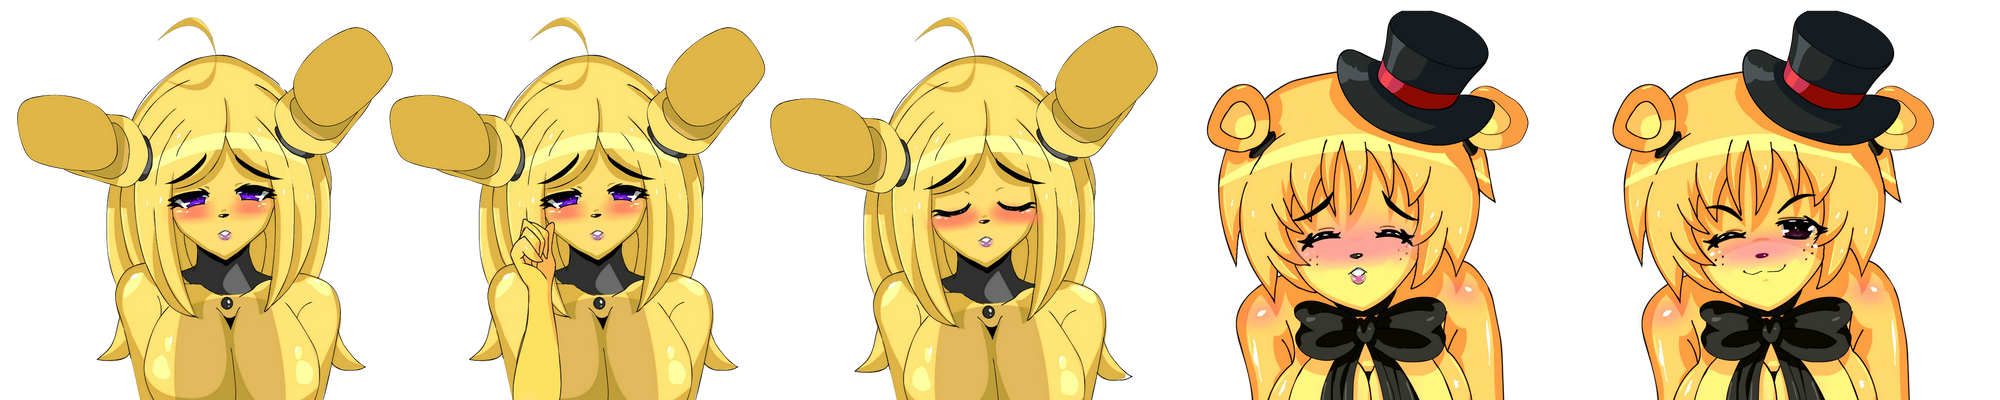 FIxed Anime Springtrap and Golden Freddy